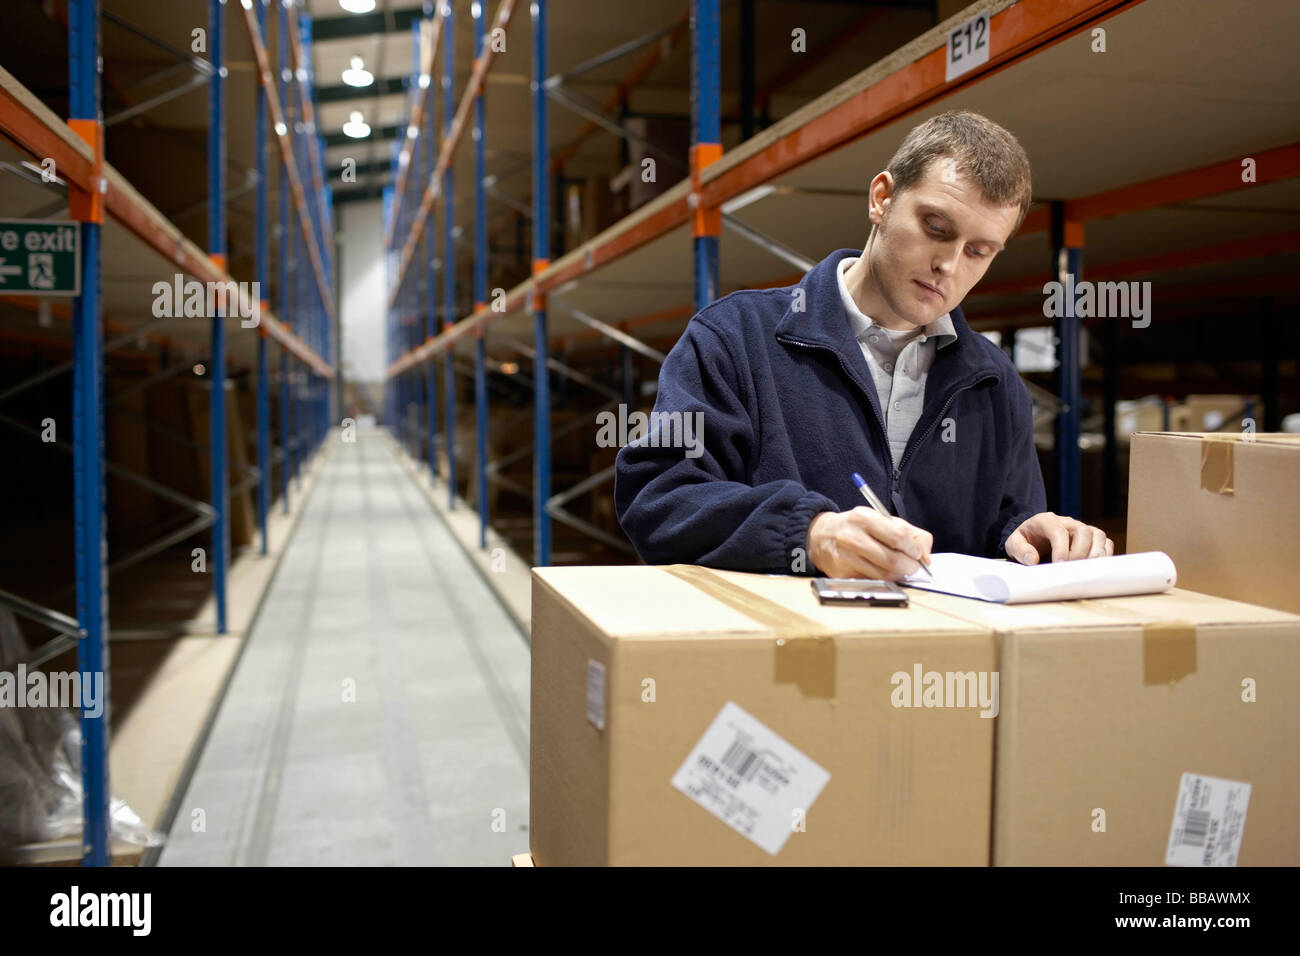 Worker filling in paperwork in warehouse - Stock Image